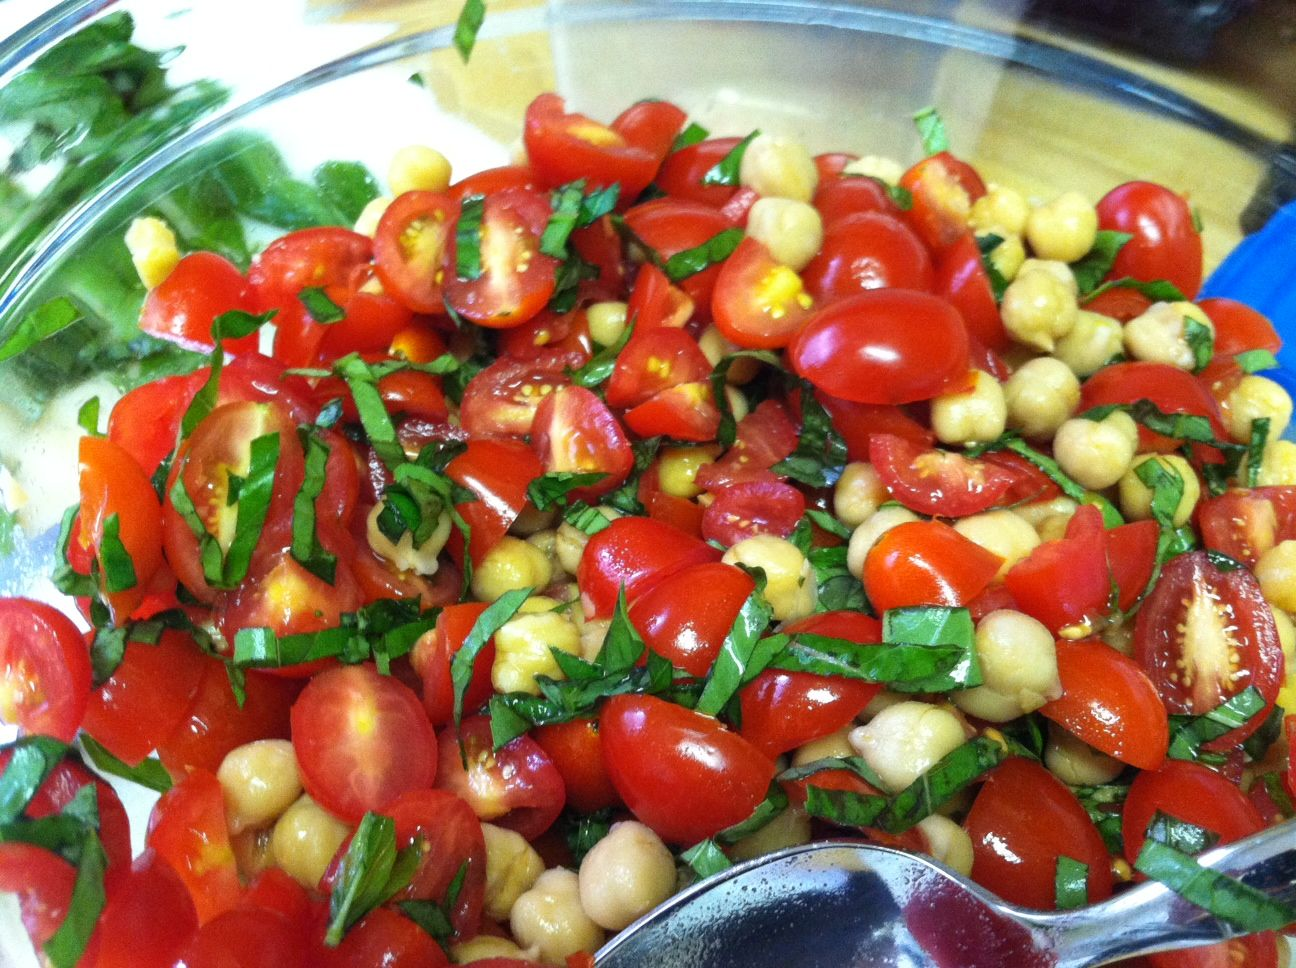 Chickpea, tomato and basil salad. Simple but so delicious!